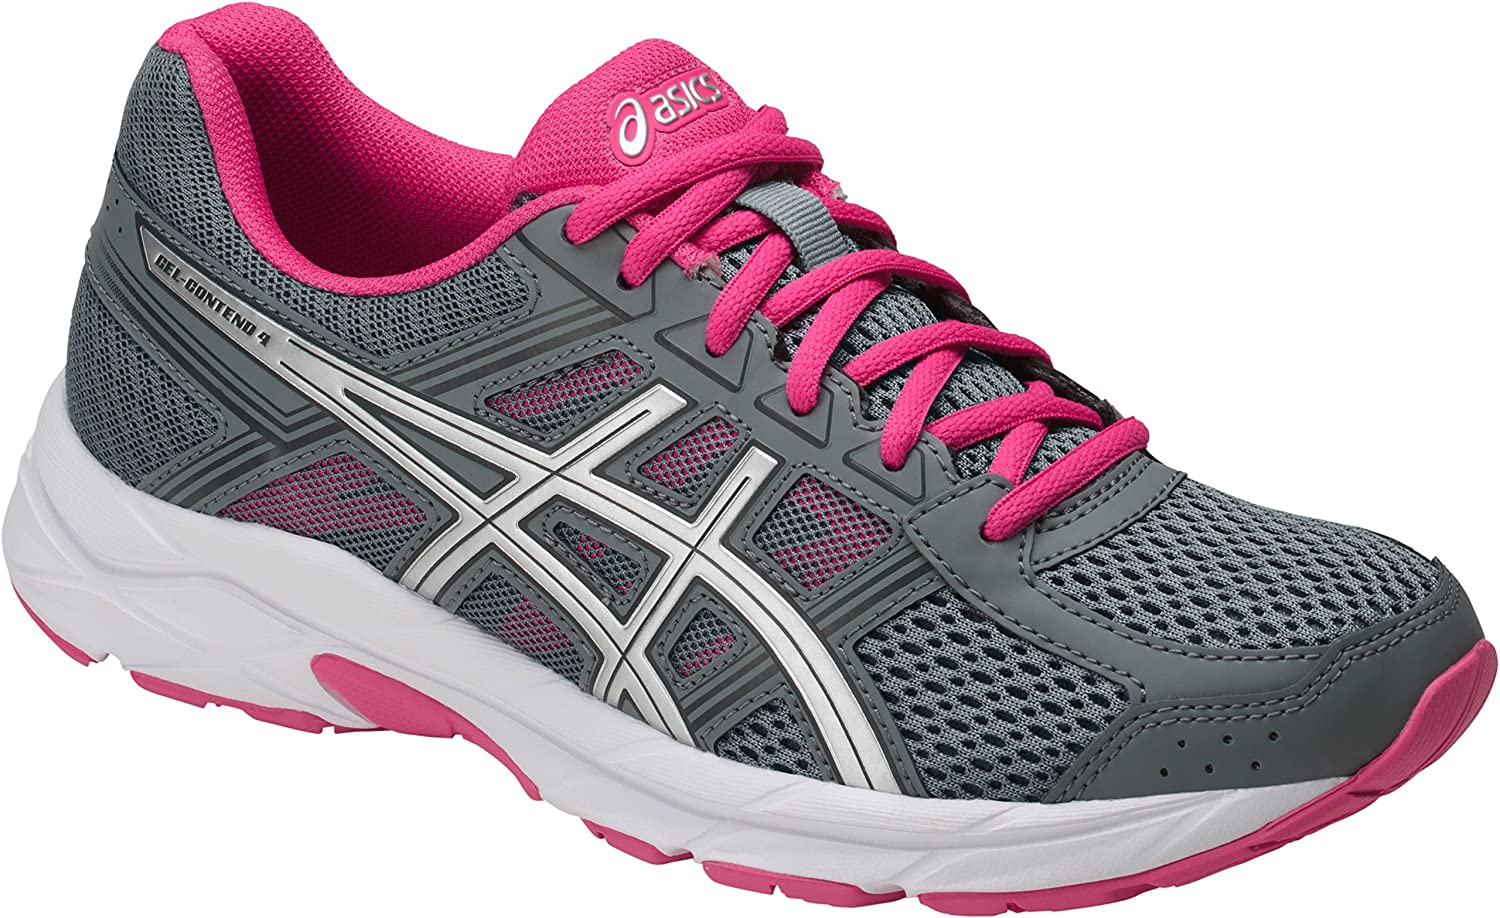 ASICS Womens Gel-Contend 4 Low Top Lace Up Running Sneaker B077XP19TB 6 B(M) US Stone Grey/Silver/Hot Pink Stone Grey/Silver/Hot Pink 6 B(M) US